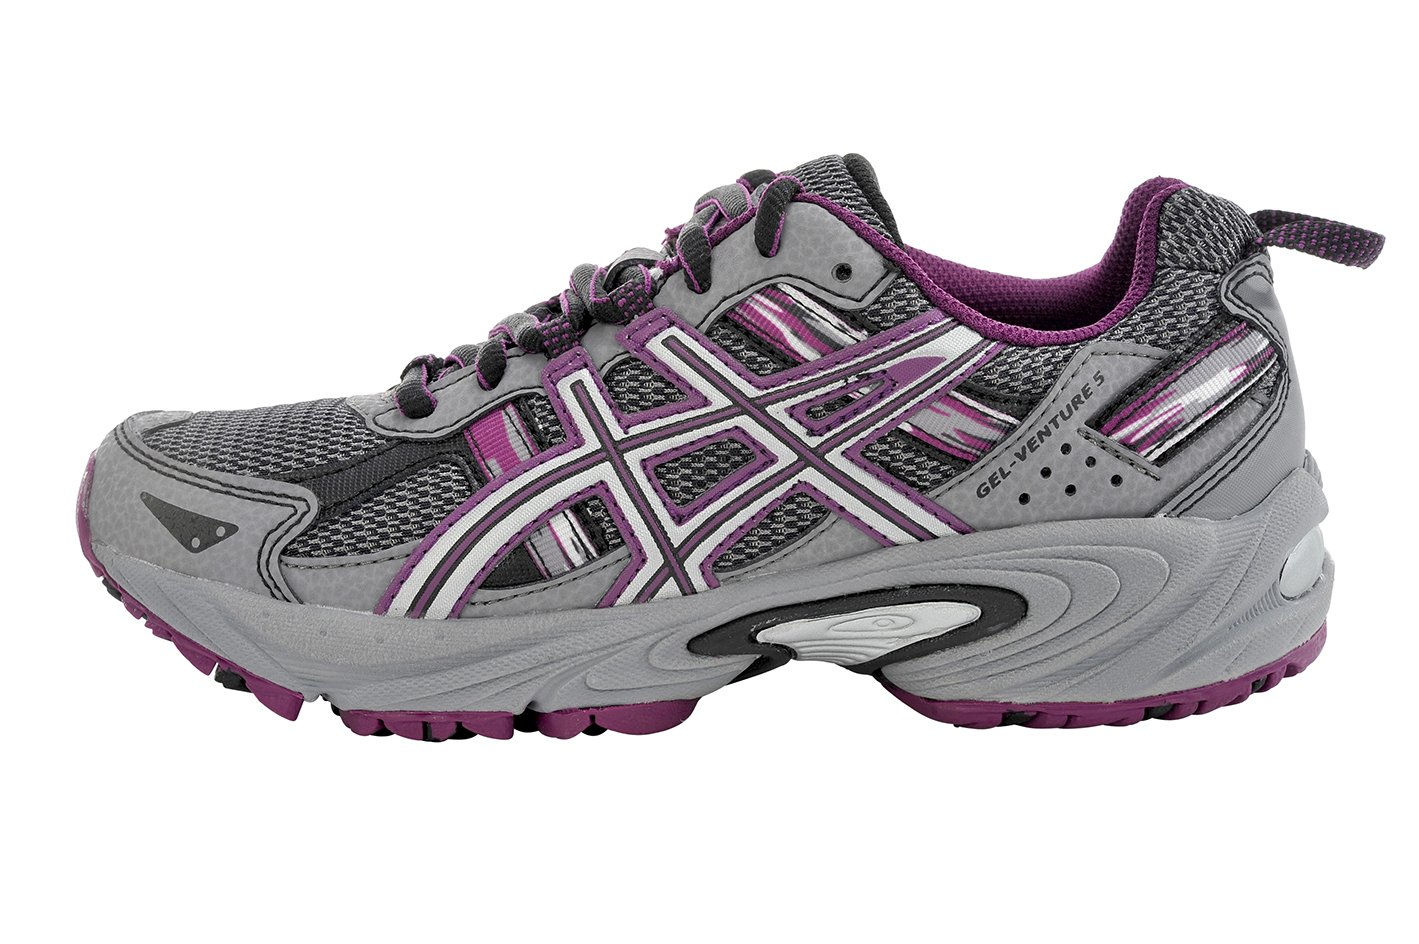 ASICS Women's Gel-Venture 5 Trail Running Shoe, Frost Gray/Gray/Silver/Magenta, 6 M US by ASICS (Image #5)